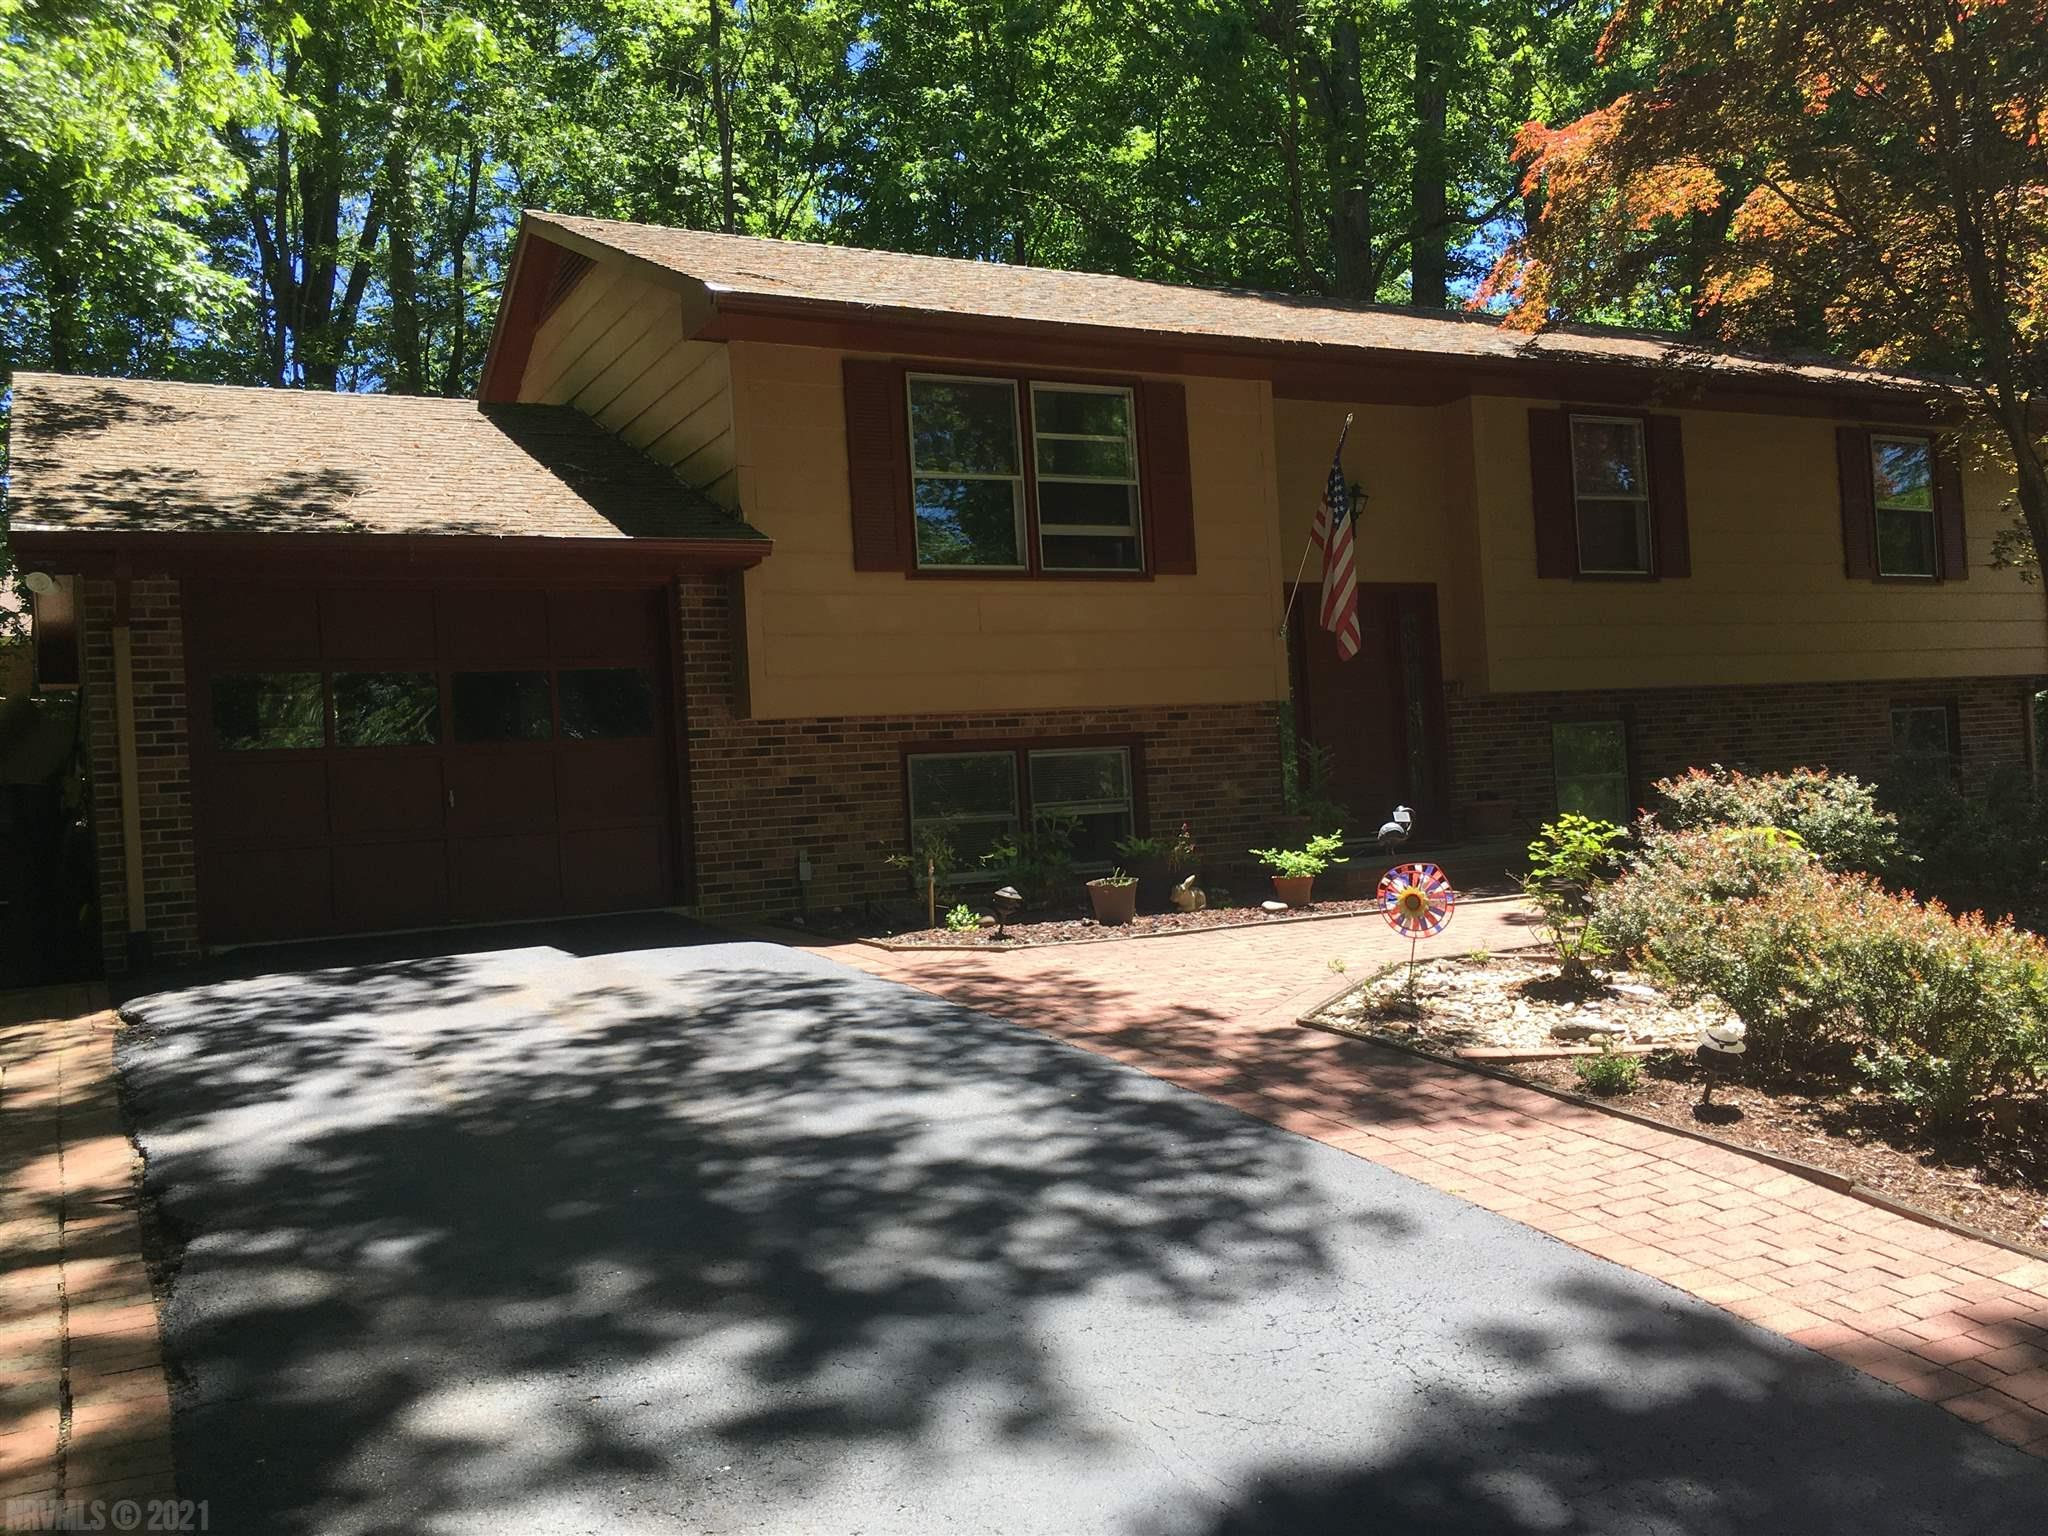 Well cared for split foyer home in quiet, mature, wooded Crestwood Gardens.  Convenient to Nellies Cave Park, First and Main, and Virginia Tech.  Deck has separate rear patio with fire pit.  Home has updated appliances, lots of storage, hardwood floors, fresh paint, and on a dead-end street.